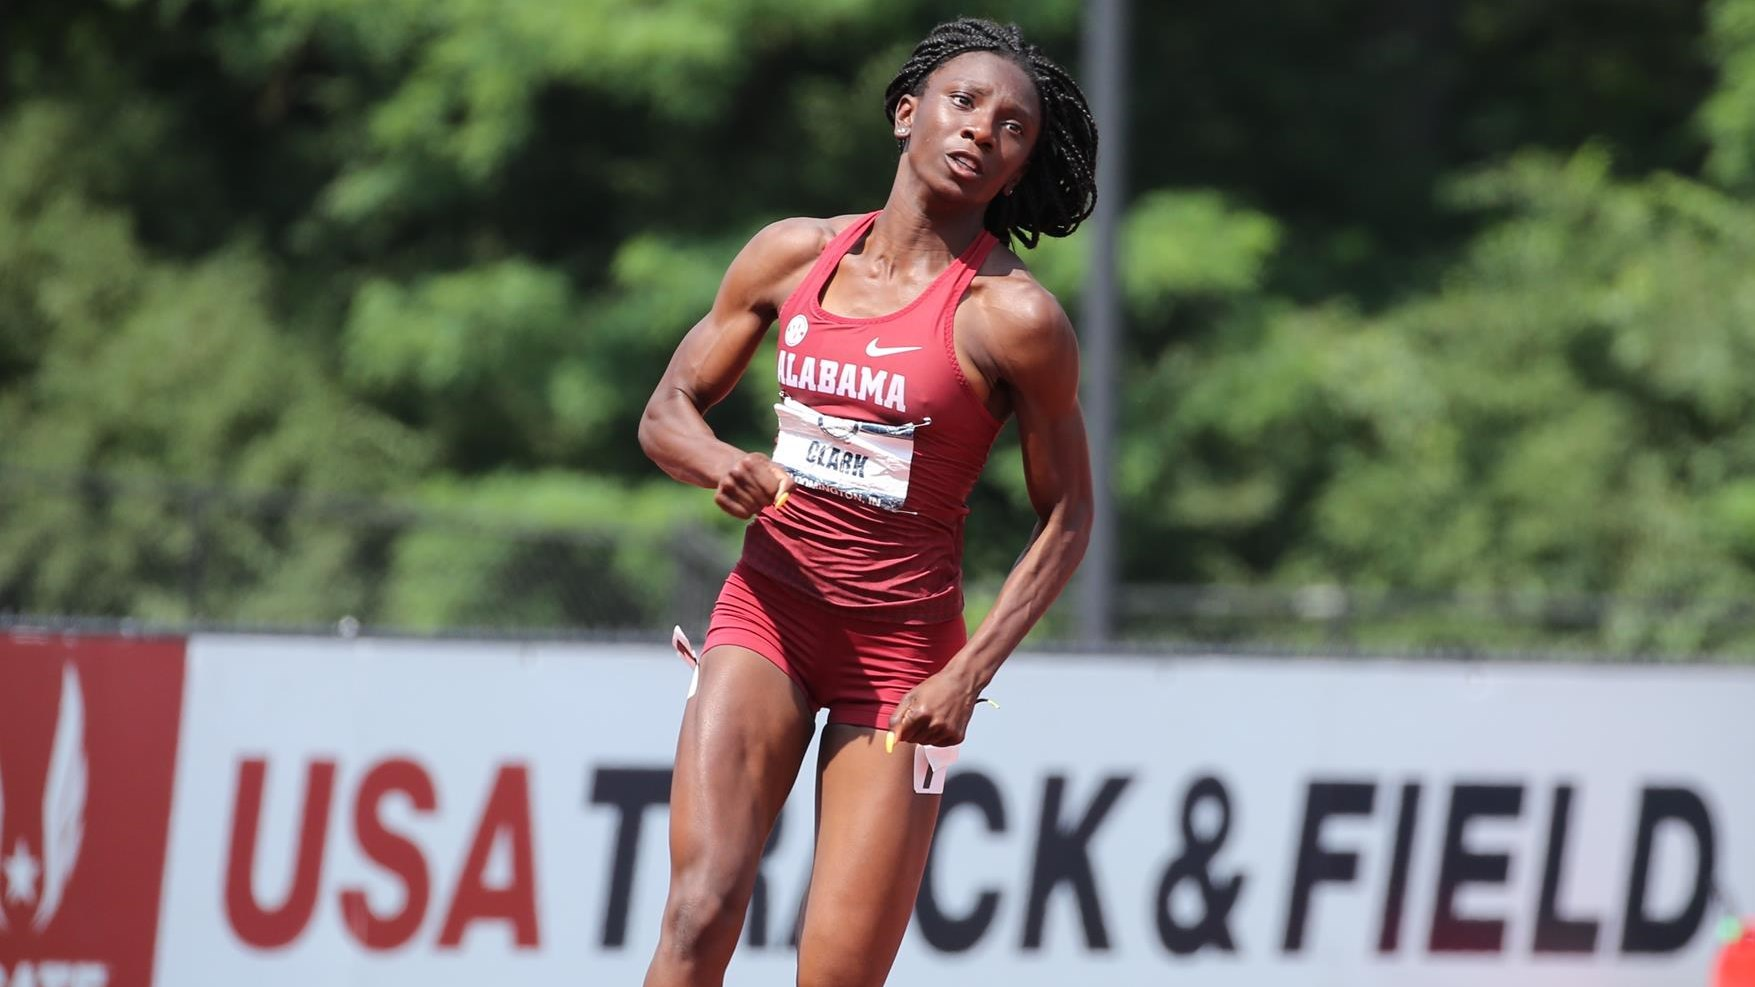 Alabama Track and Field's Clark and Colantonio Jr. Earn SEC Weekly Honors